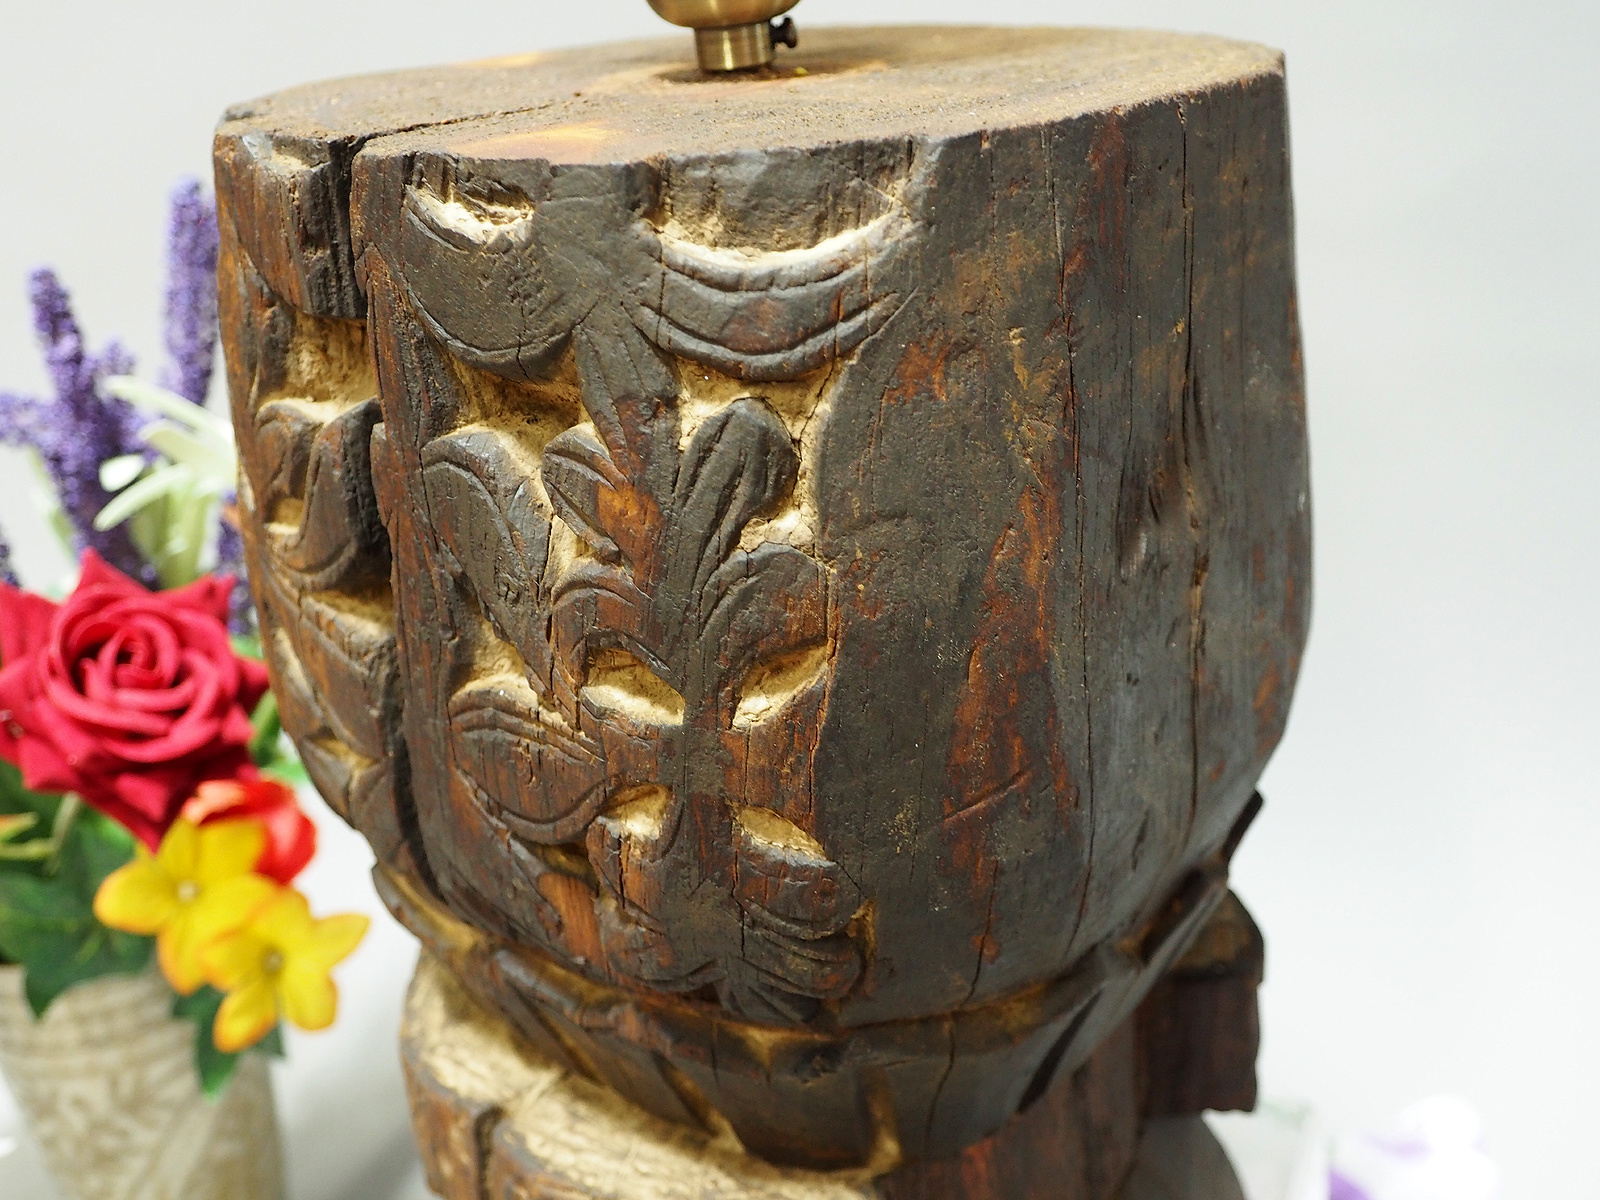 antique wooden table lamp lamp base from Nuristan Afghanistan Swat velly pakistan with brass lampholder. No:NU1